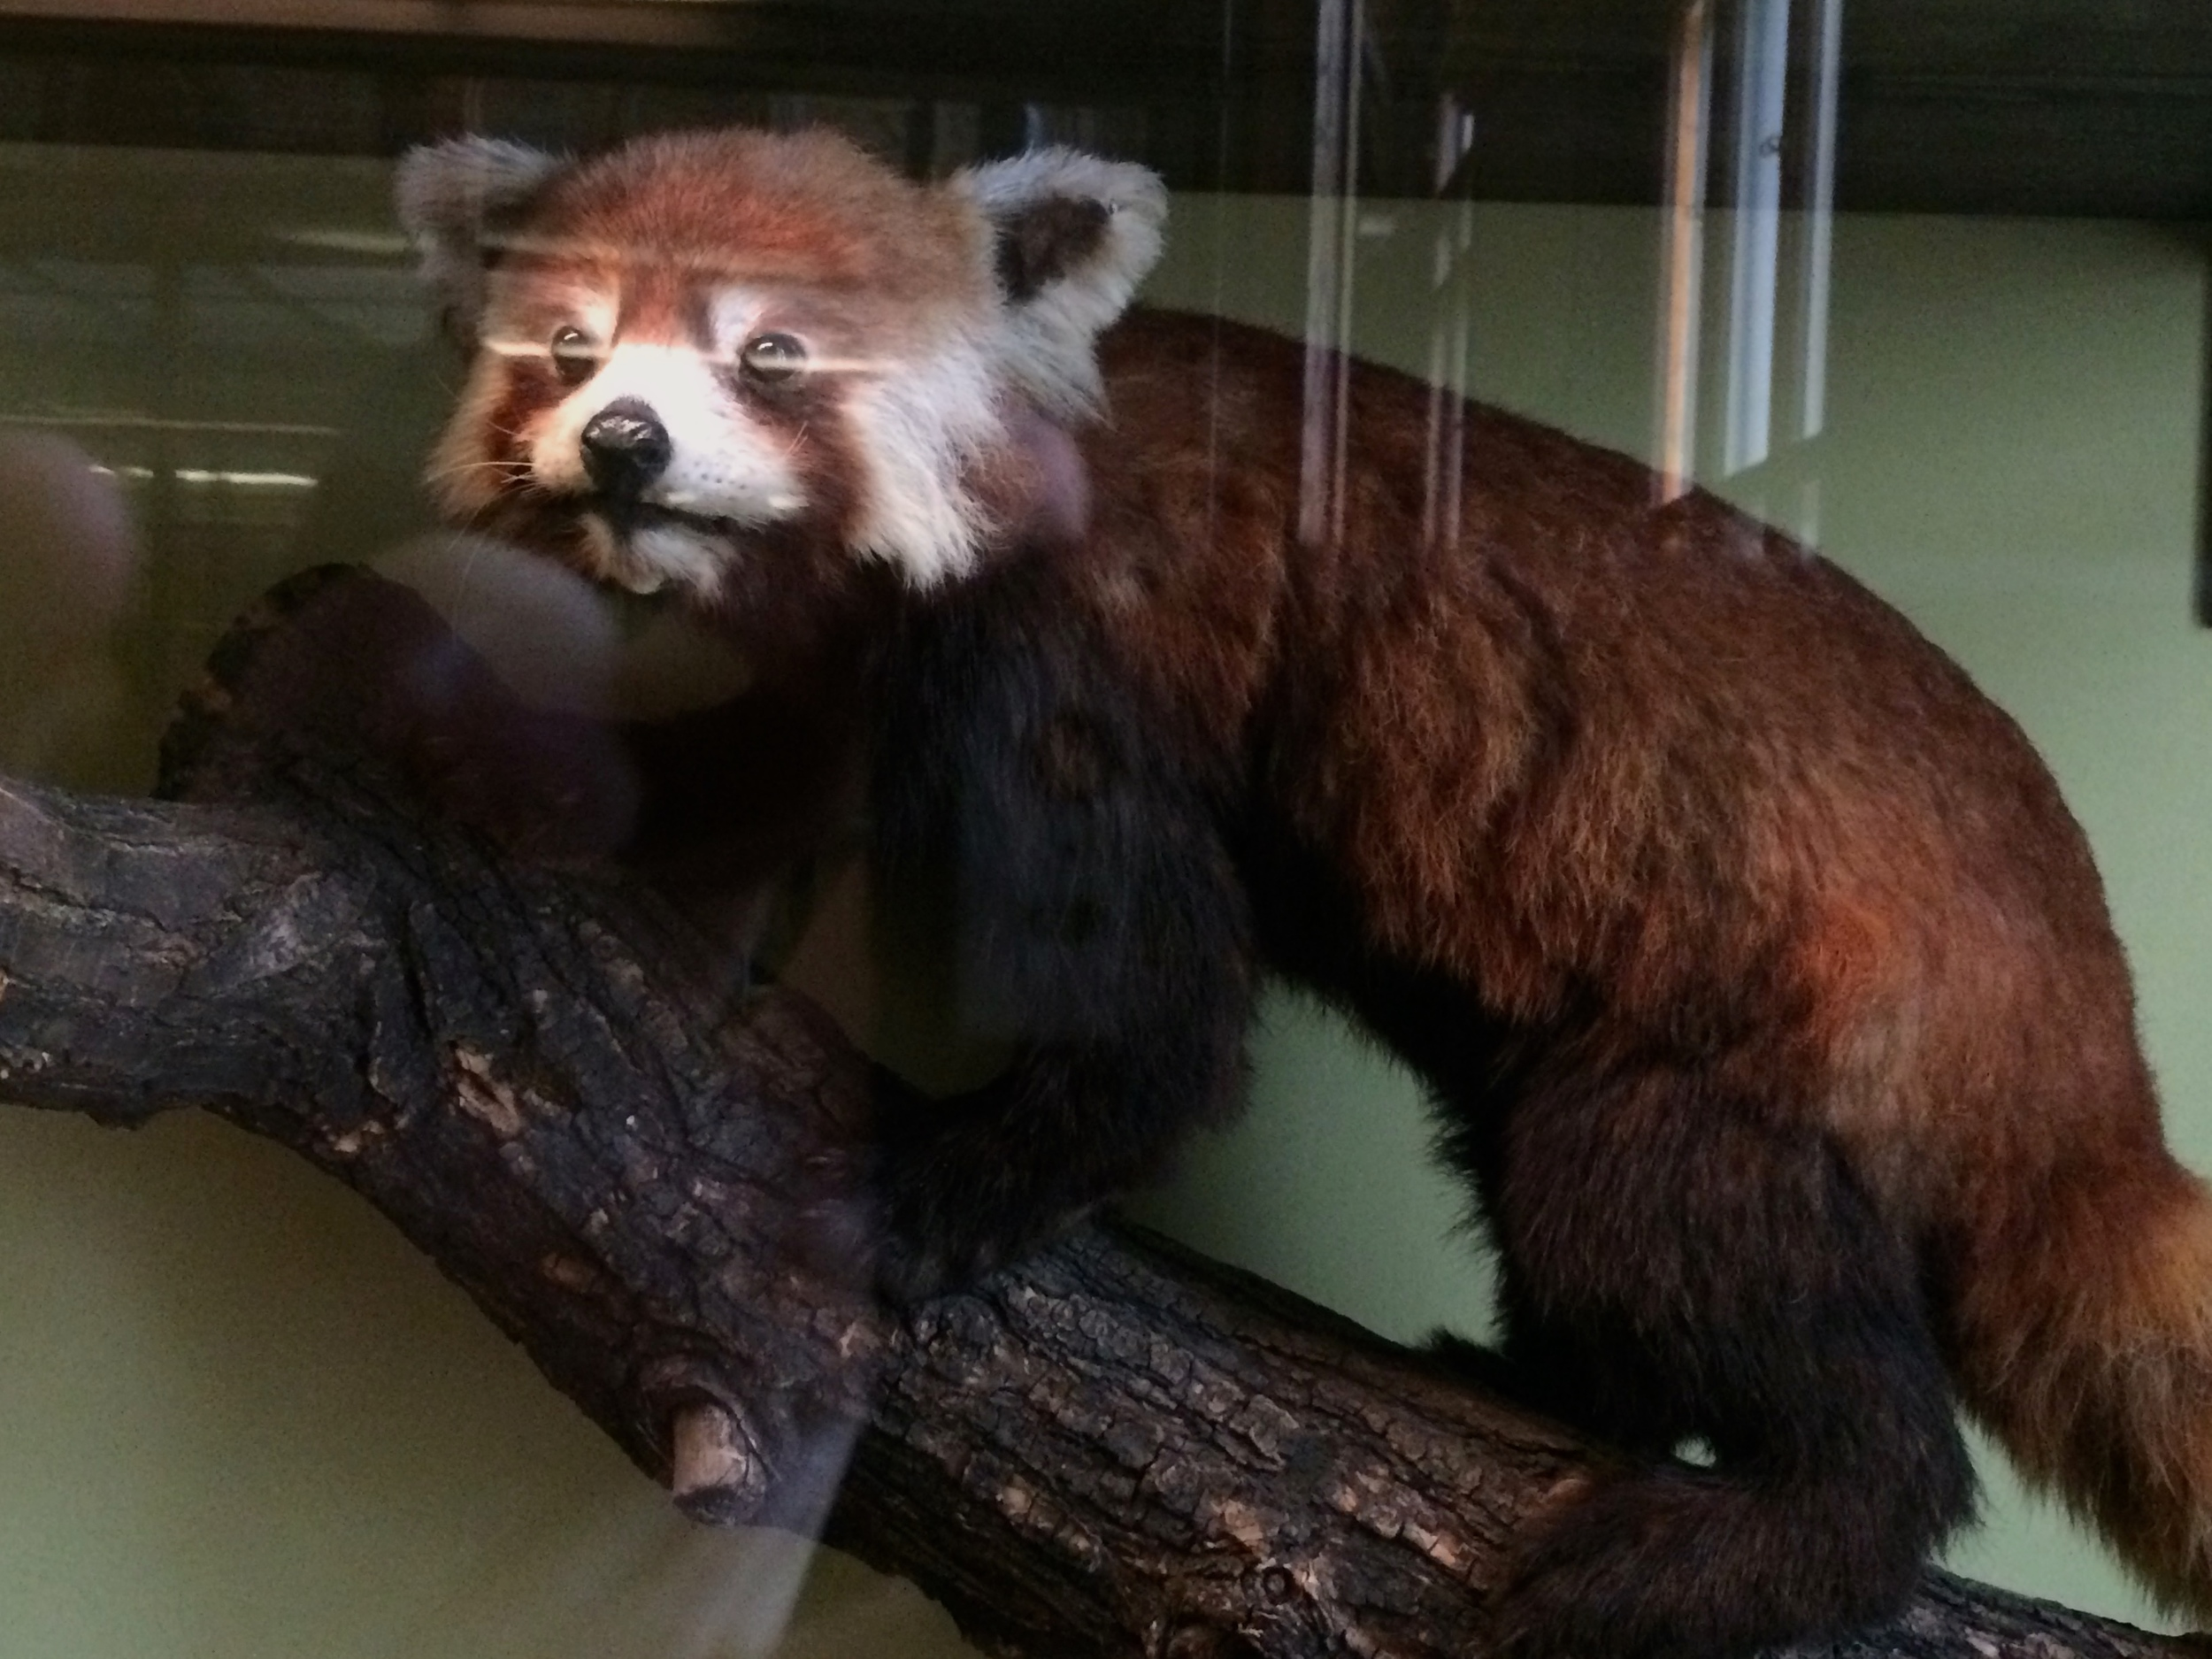 A museum full of thousands of animals and I find the Red Panda. Because they're perfect. I want one. So bad.